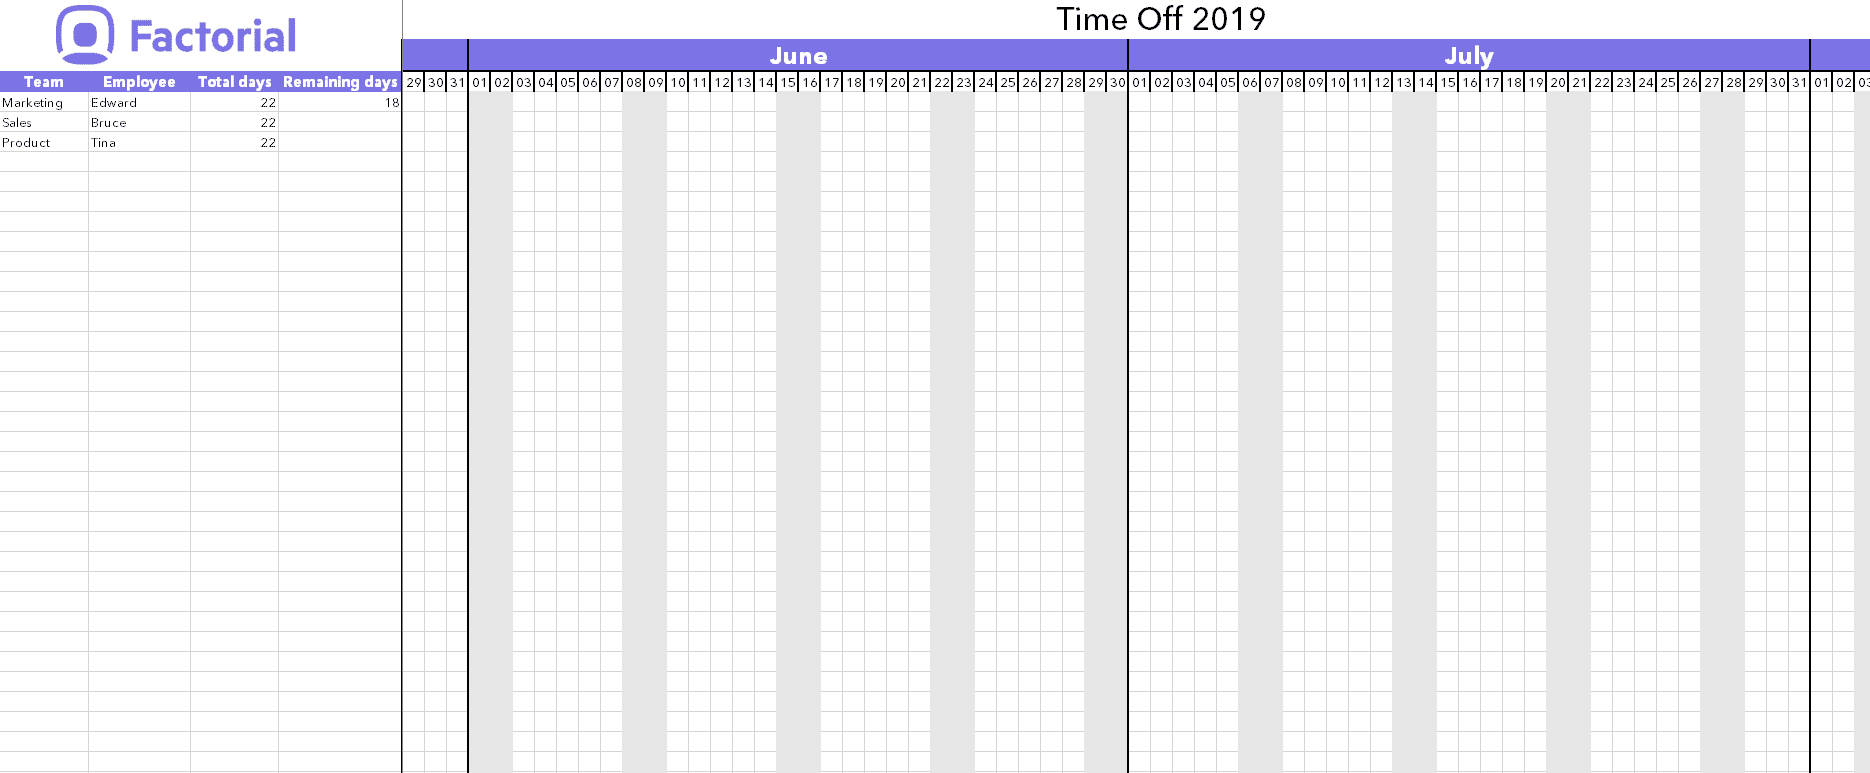 Manage Time Off Requests W/ Free Template